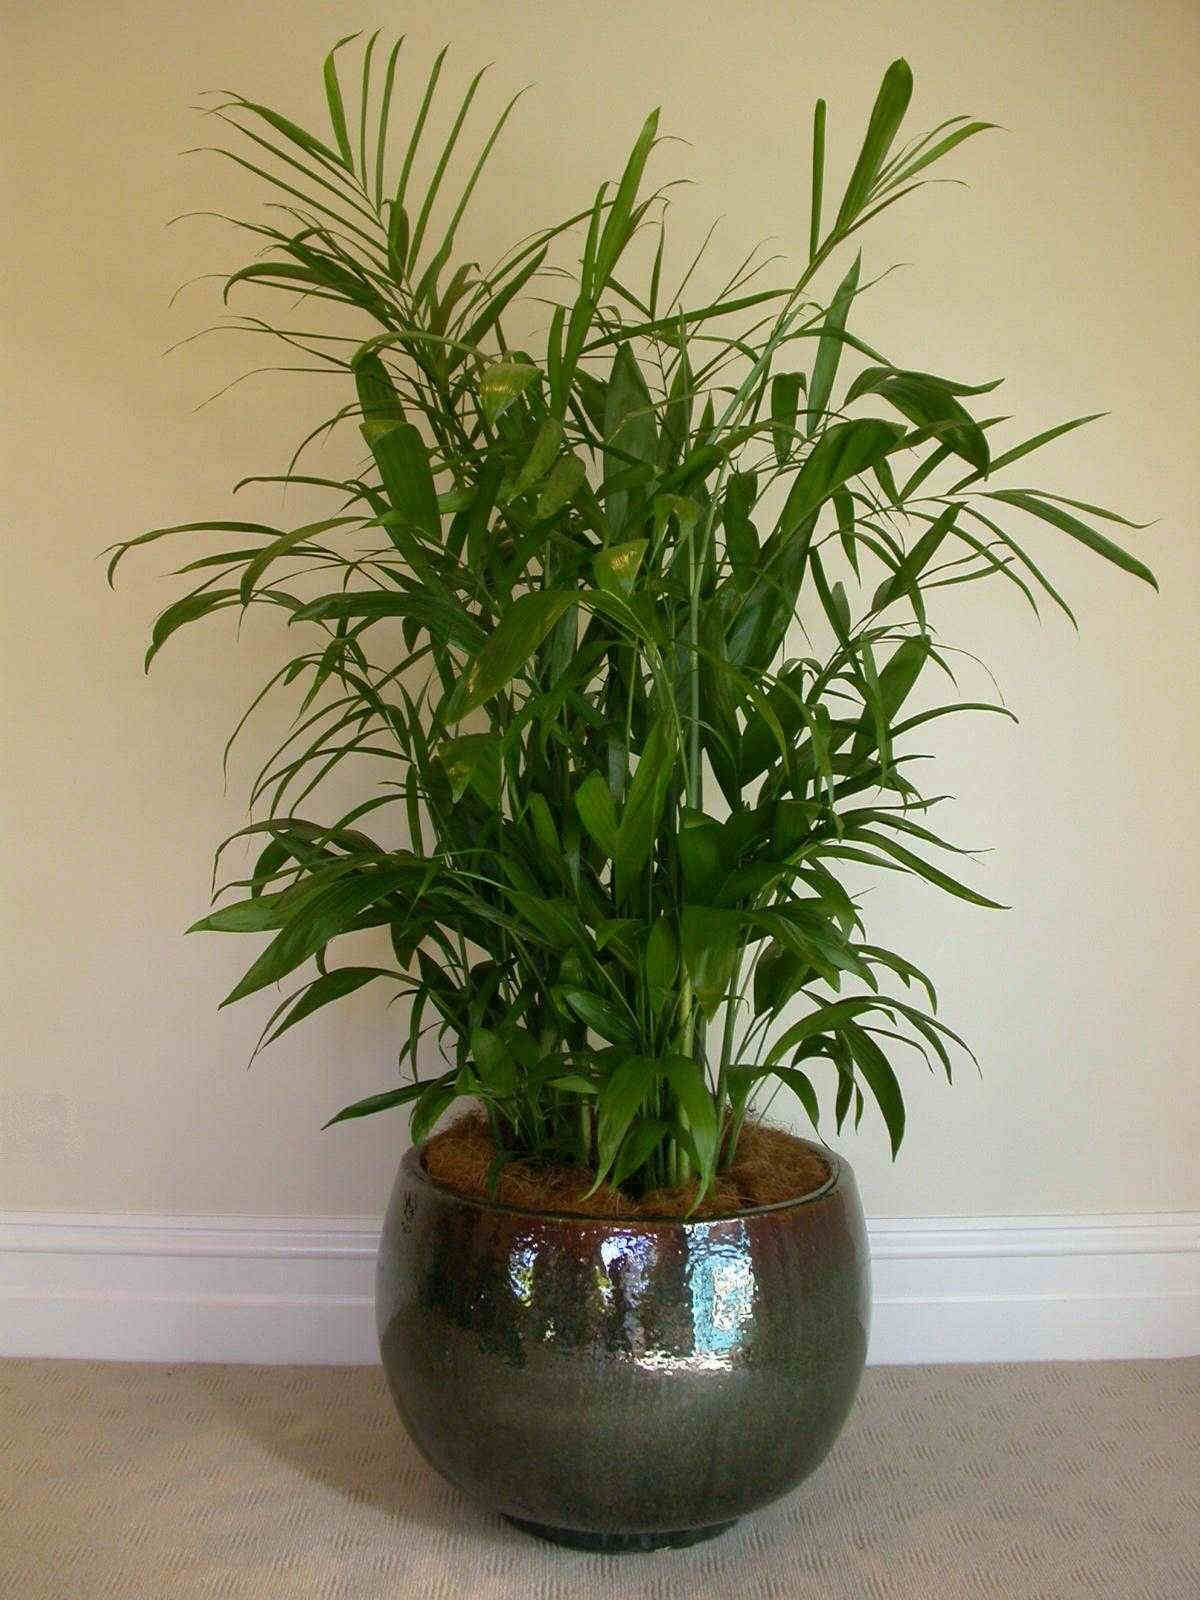 Non toxic house plants for better iaq living room Houseplants not toxic to cats